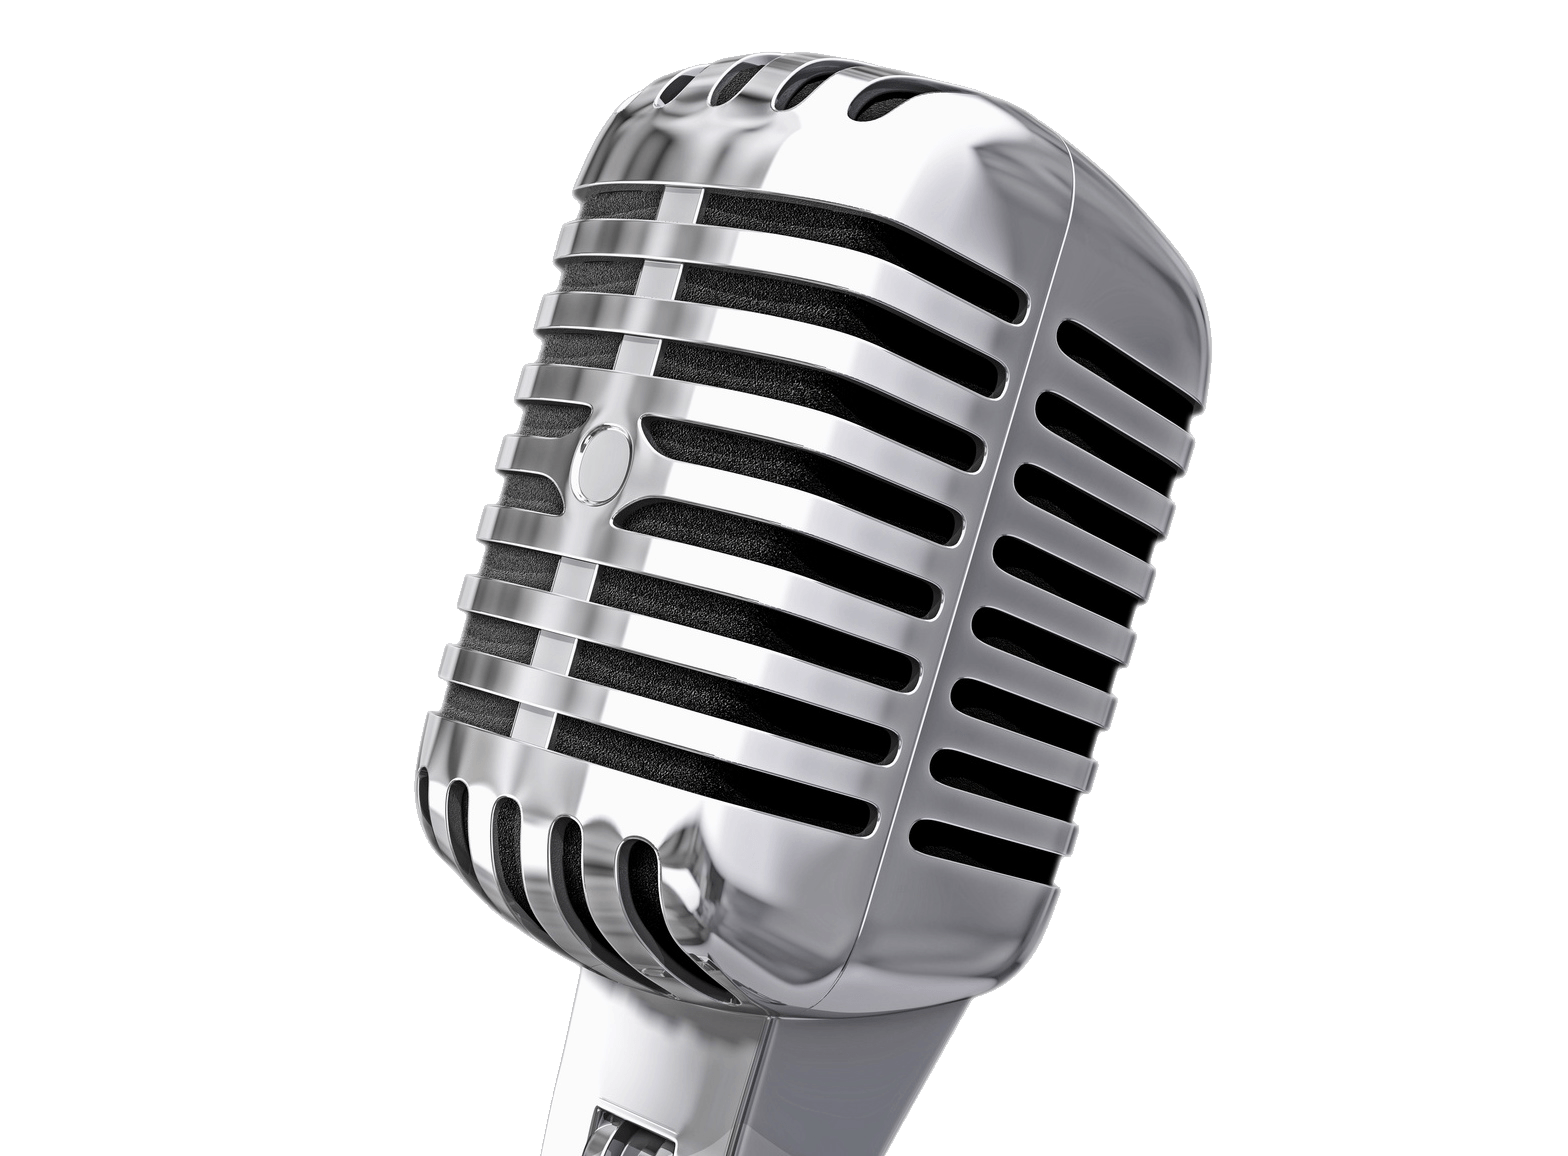 Old school microphone clipart jpg freeuse Vintage Microphone transparent PNG - StickPNG jpg freeuse